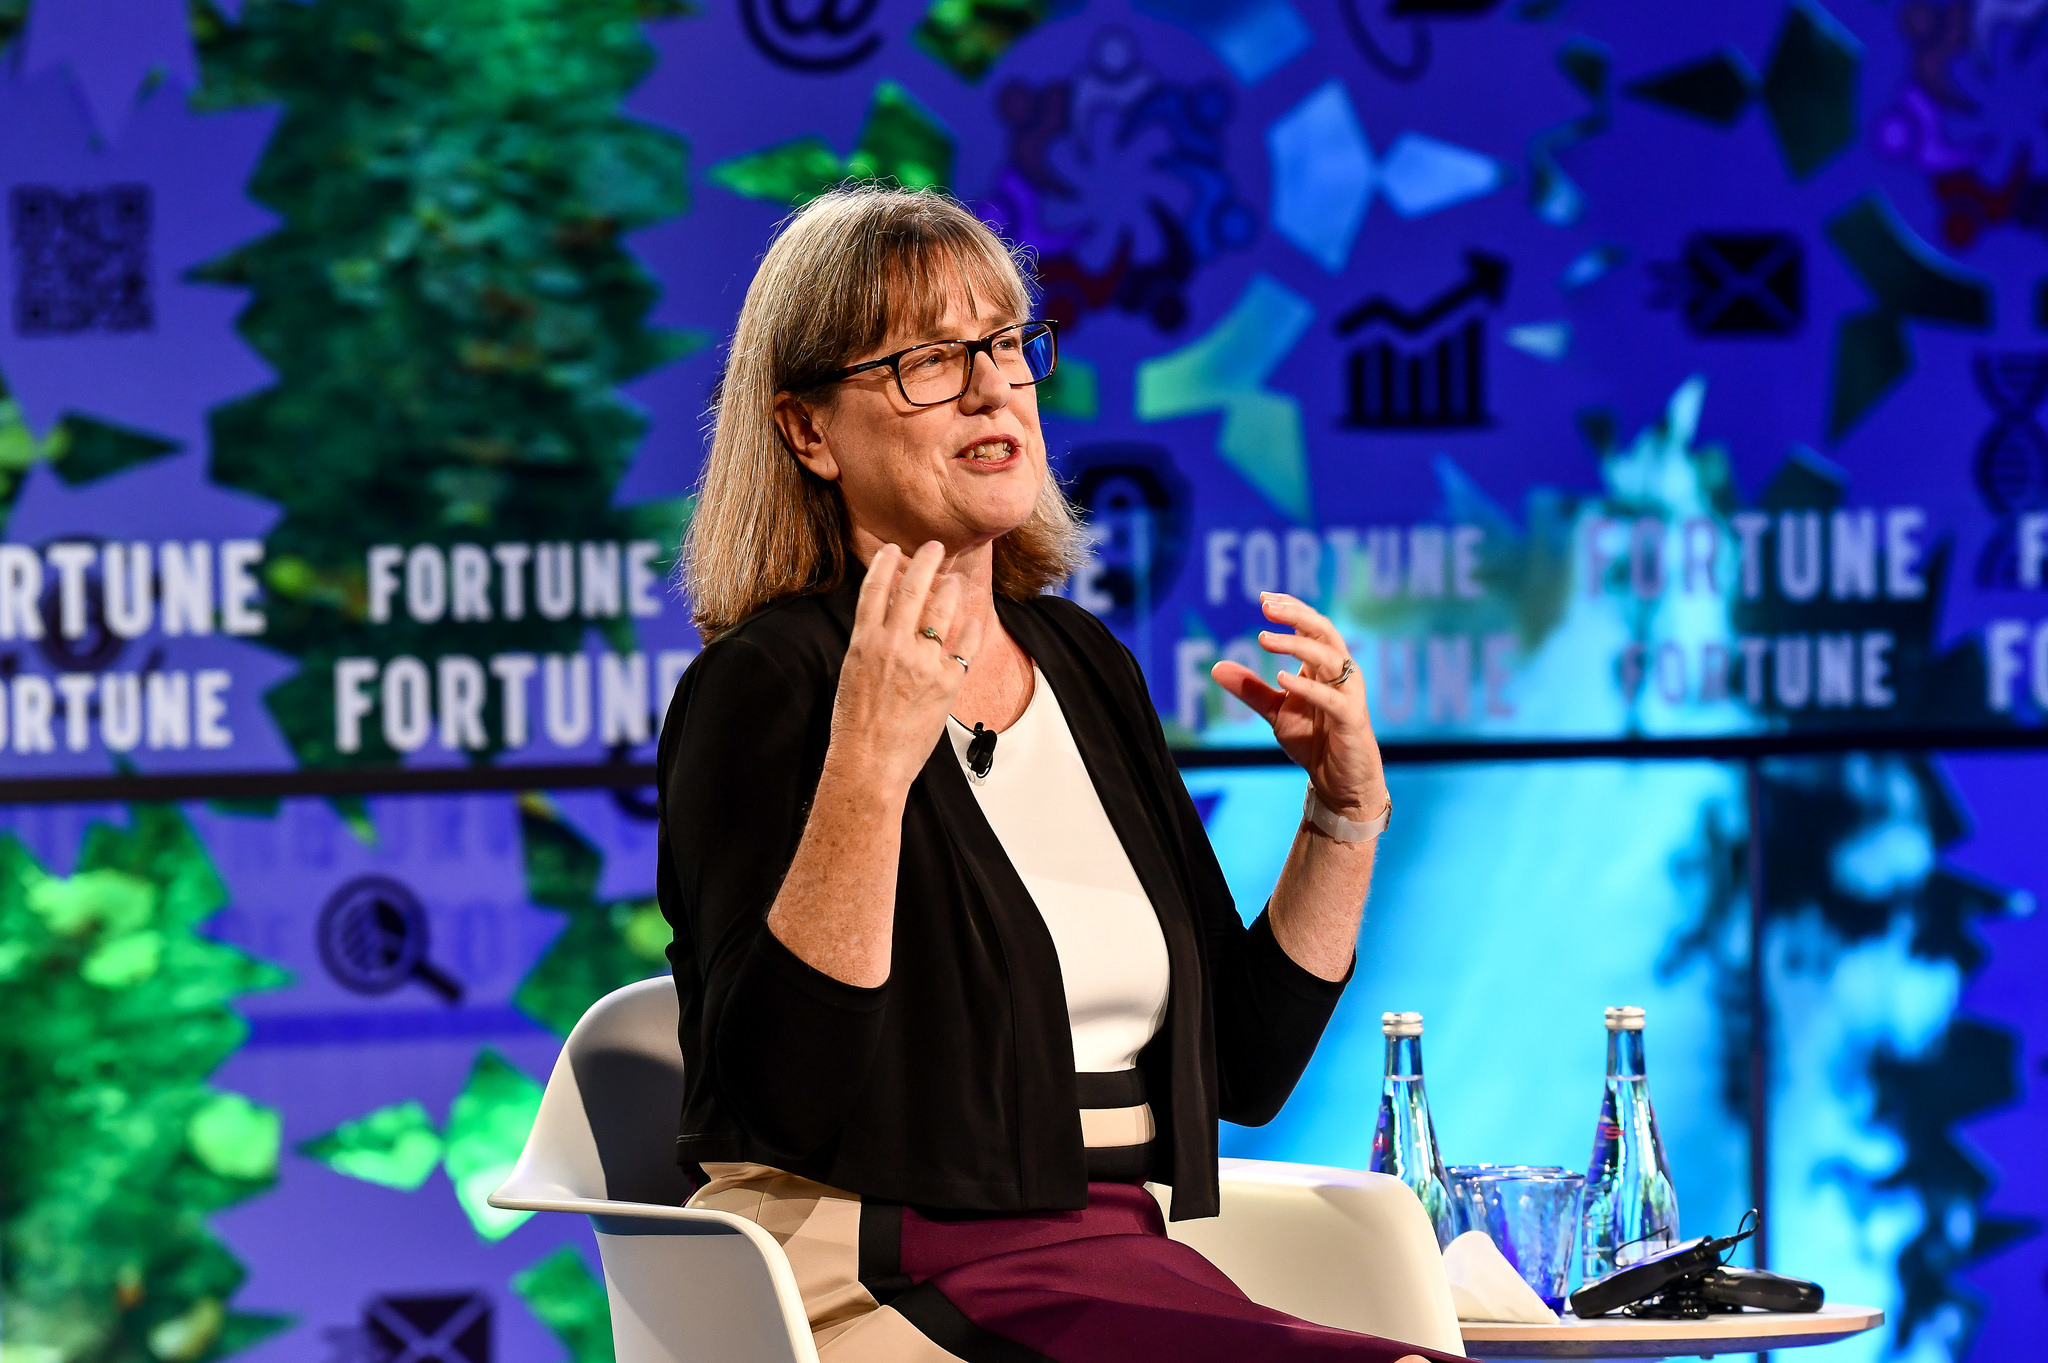 Donna Strickland, 2018 Nobel Laureate in Physics and a University of Waterloo professor, at the 2018 Fortune Global Forum in Toronto.